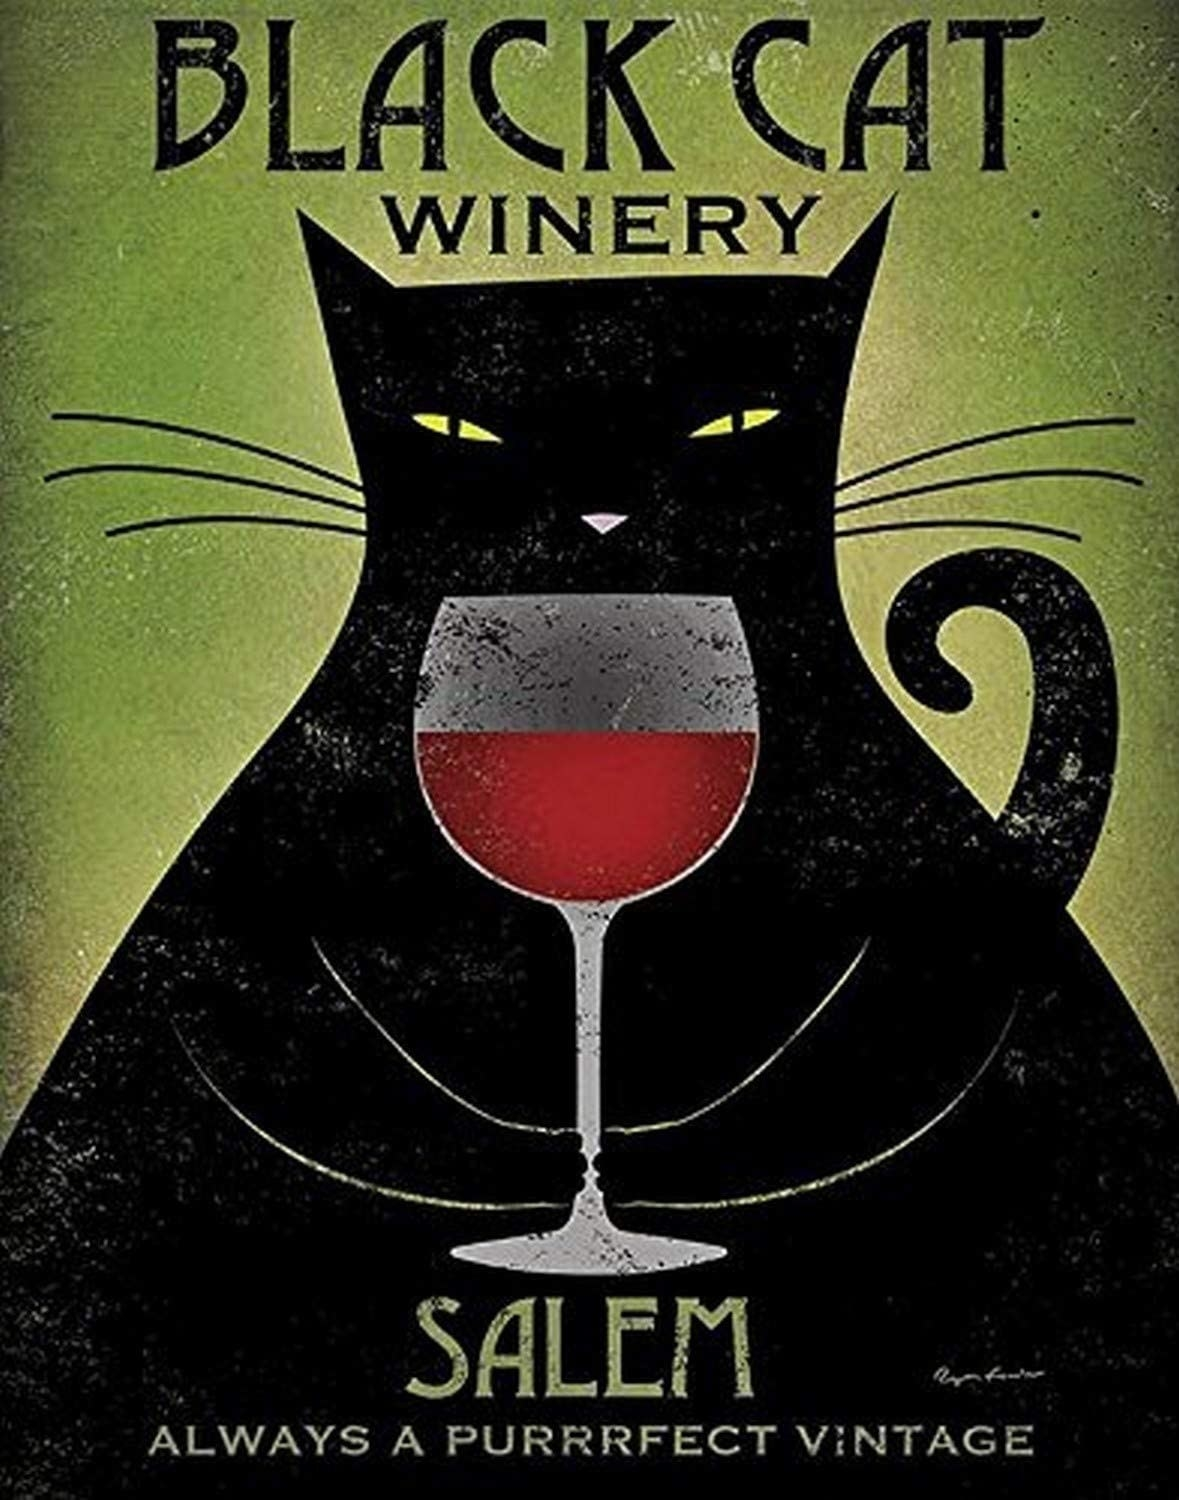 A poster that says black cat winery salem always a purrfect vintage with a black cat drinking wine